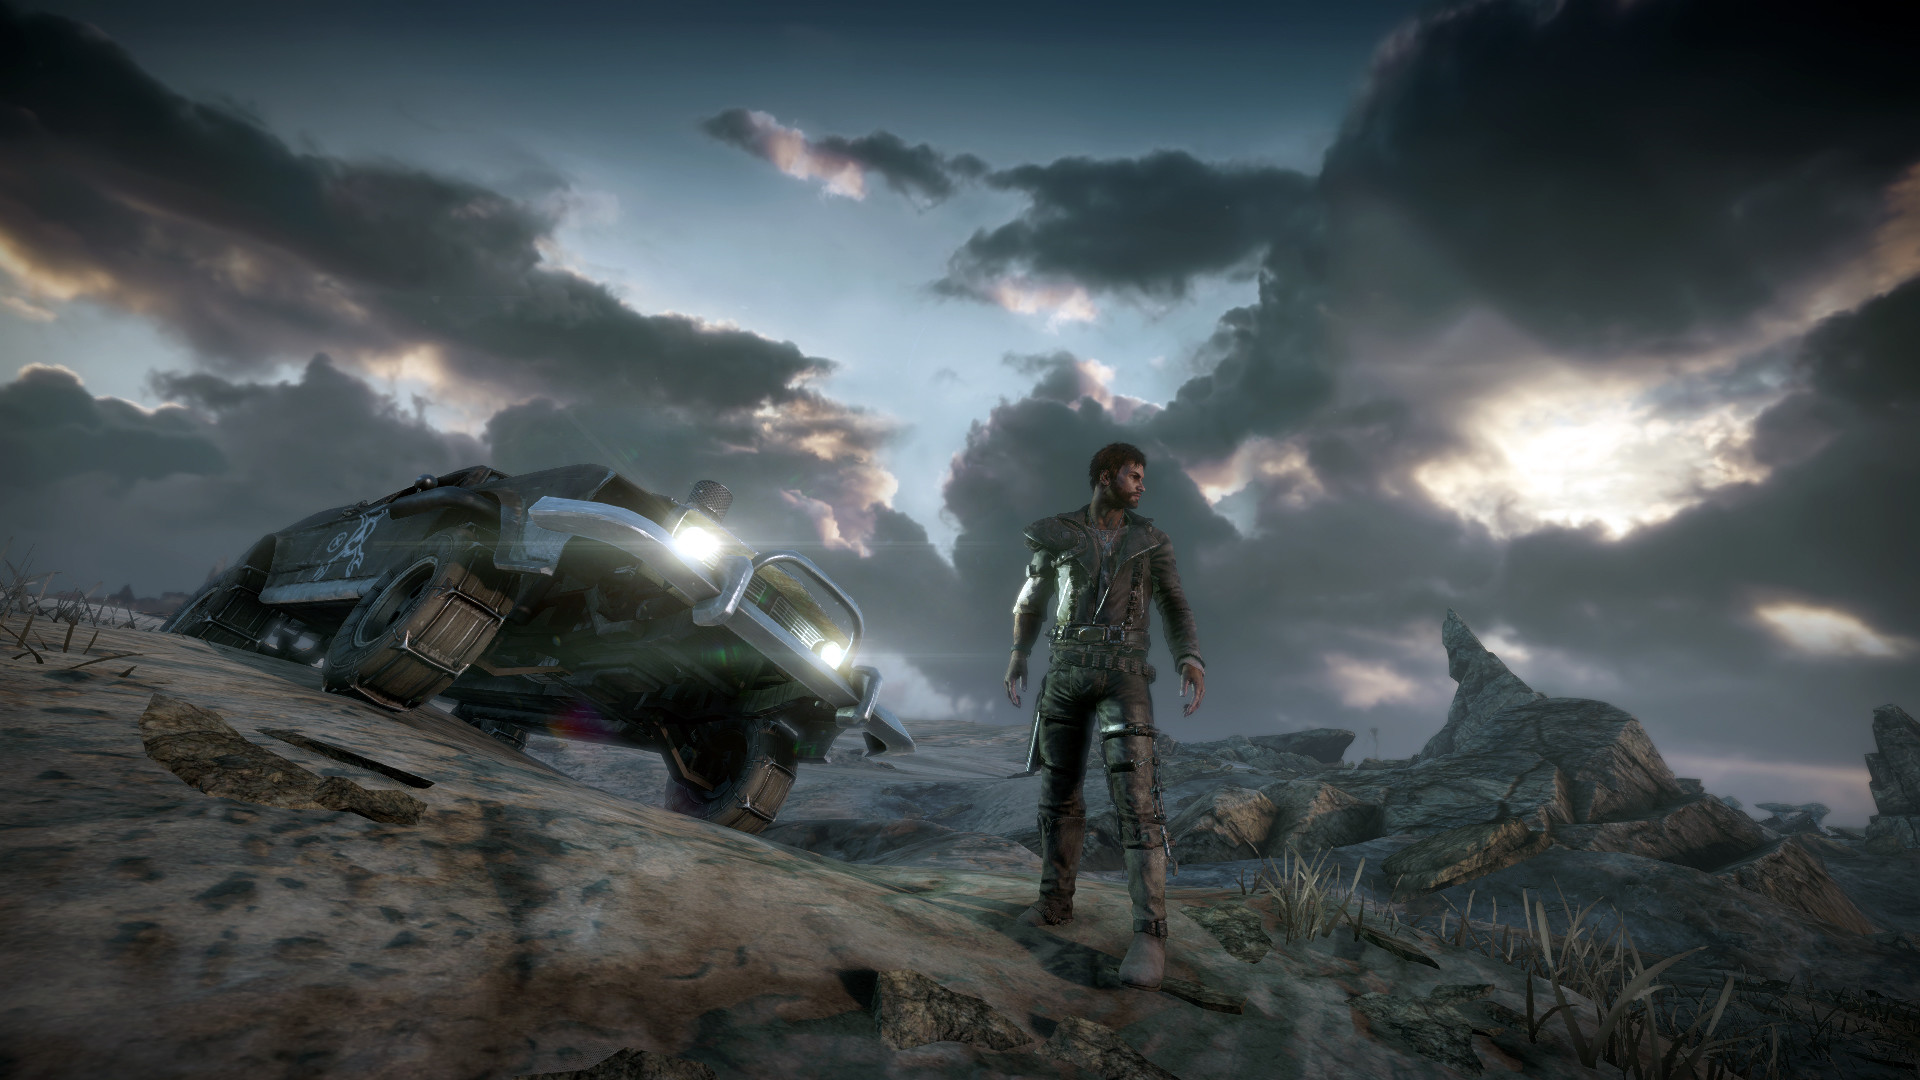 Free Mad Max Game Wallpaper